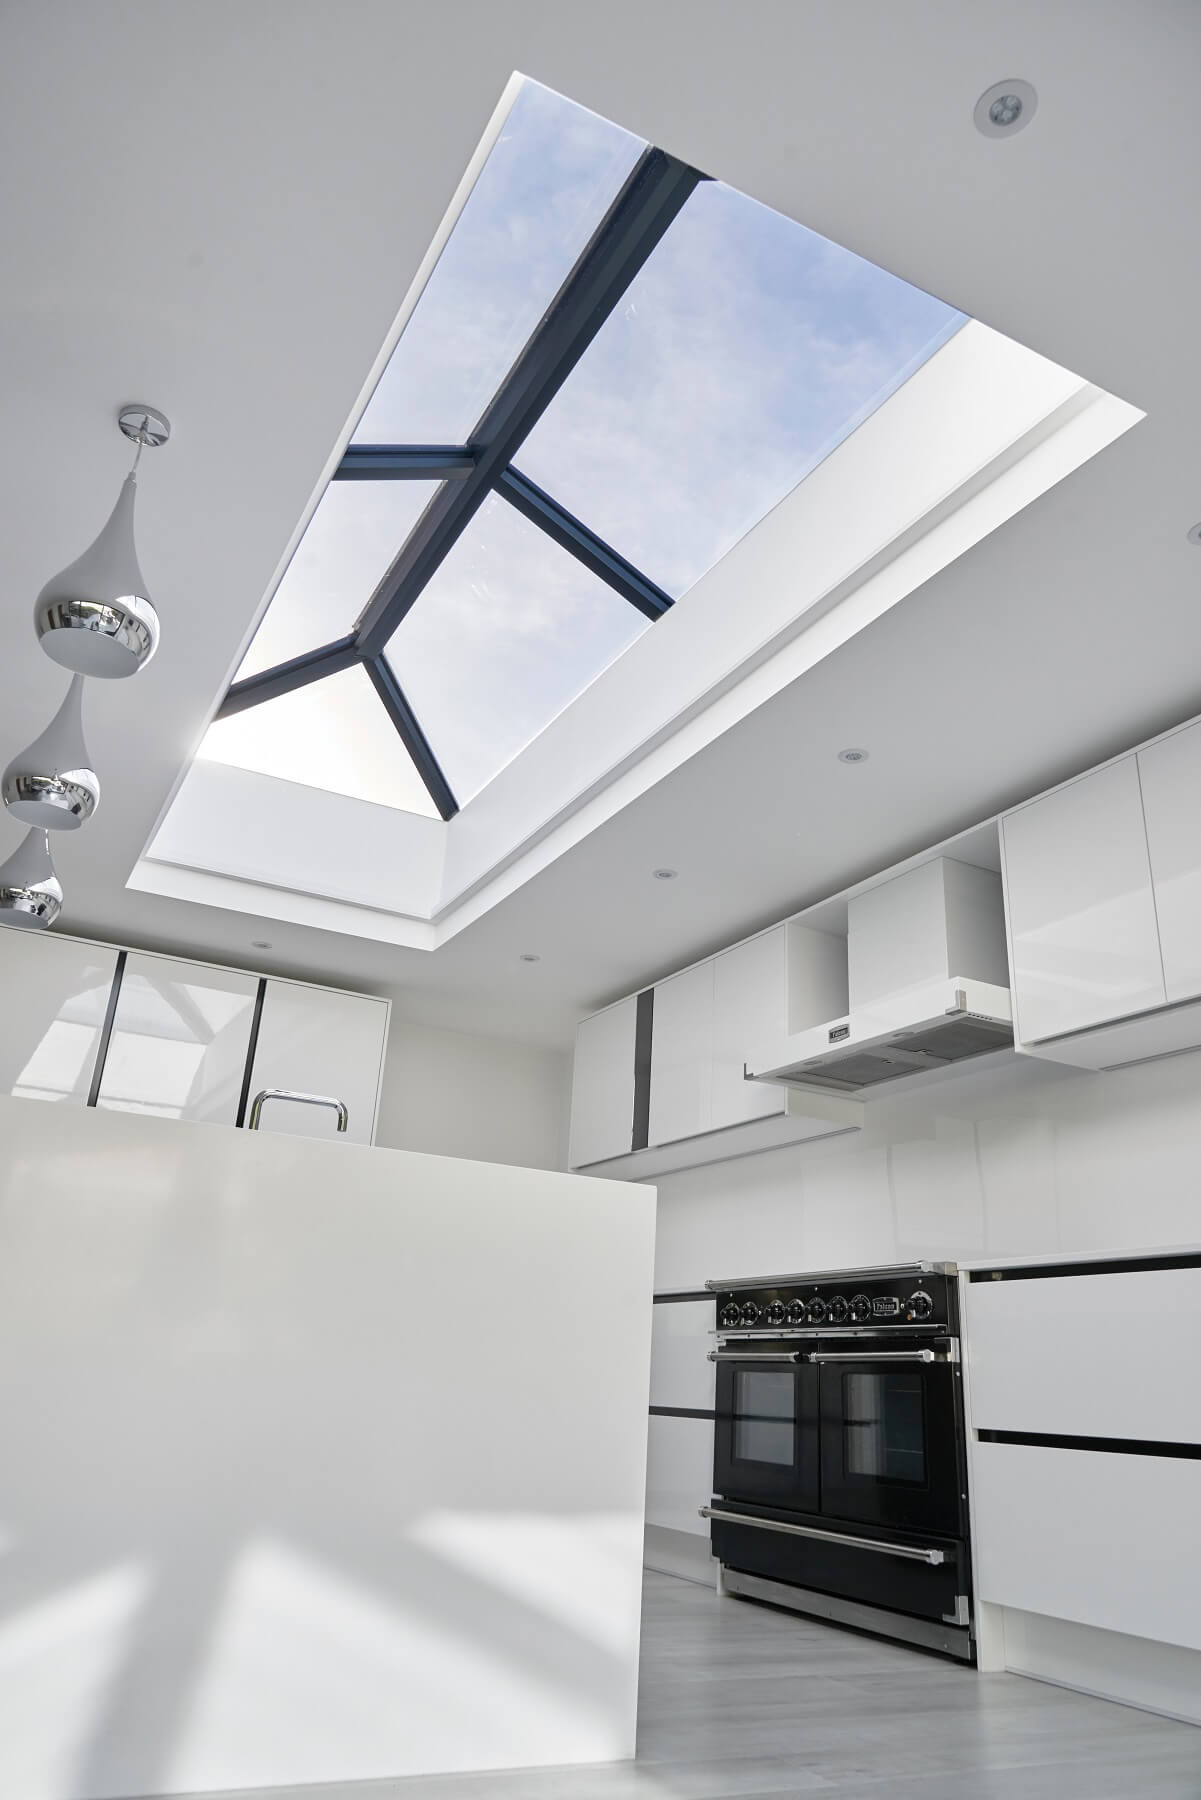 Interior view of lantern roof